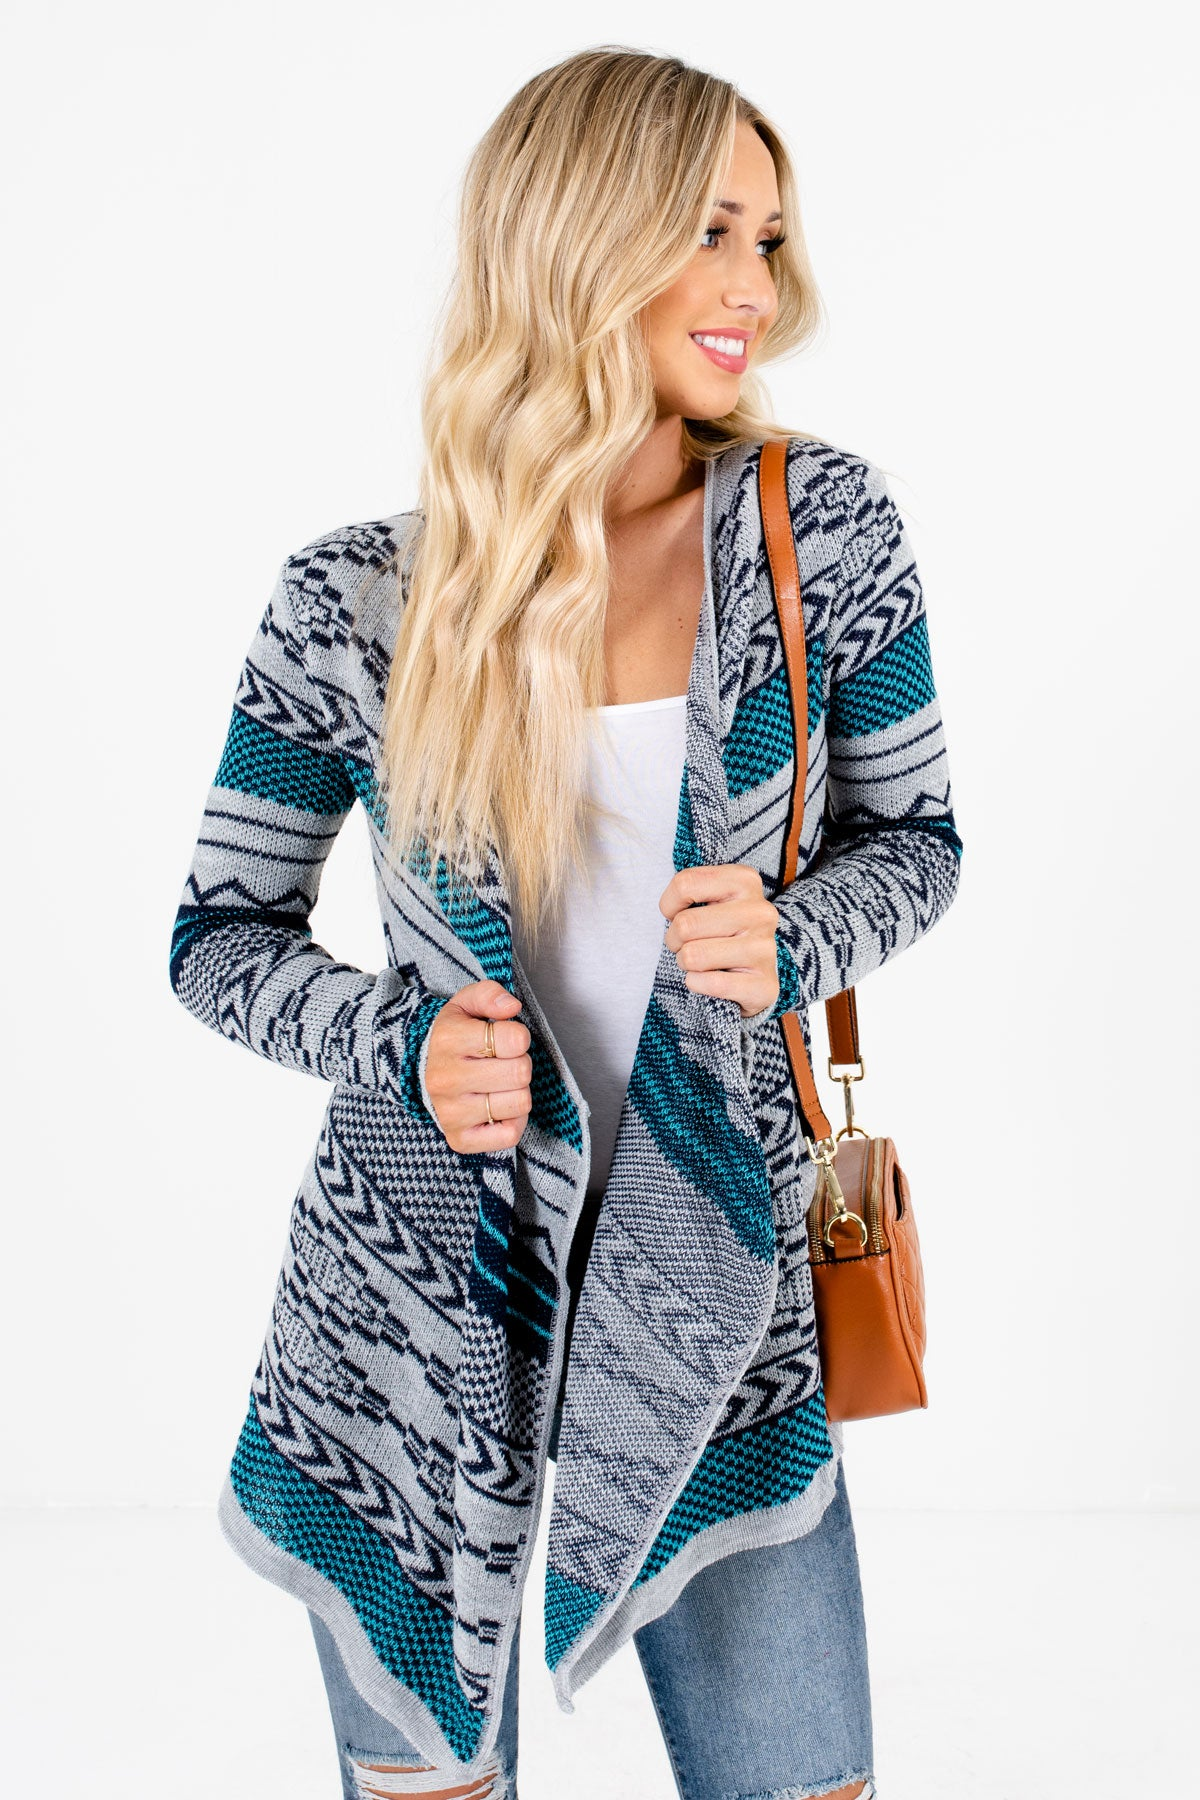 Blue Multicolored Patterned Boutique Cardigans for Women